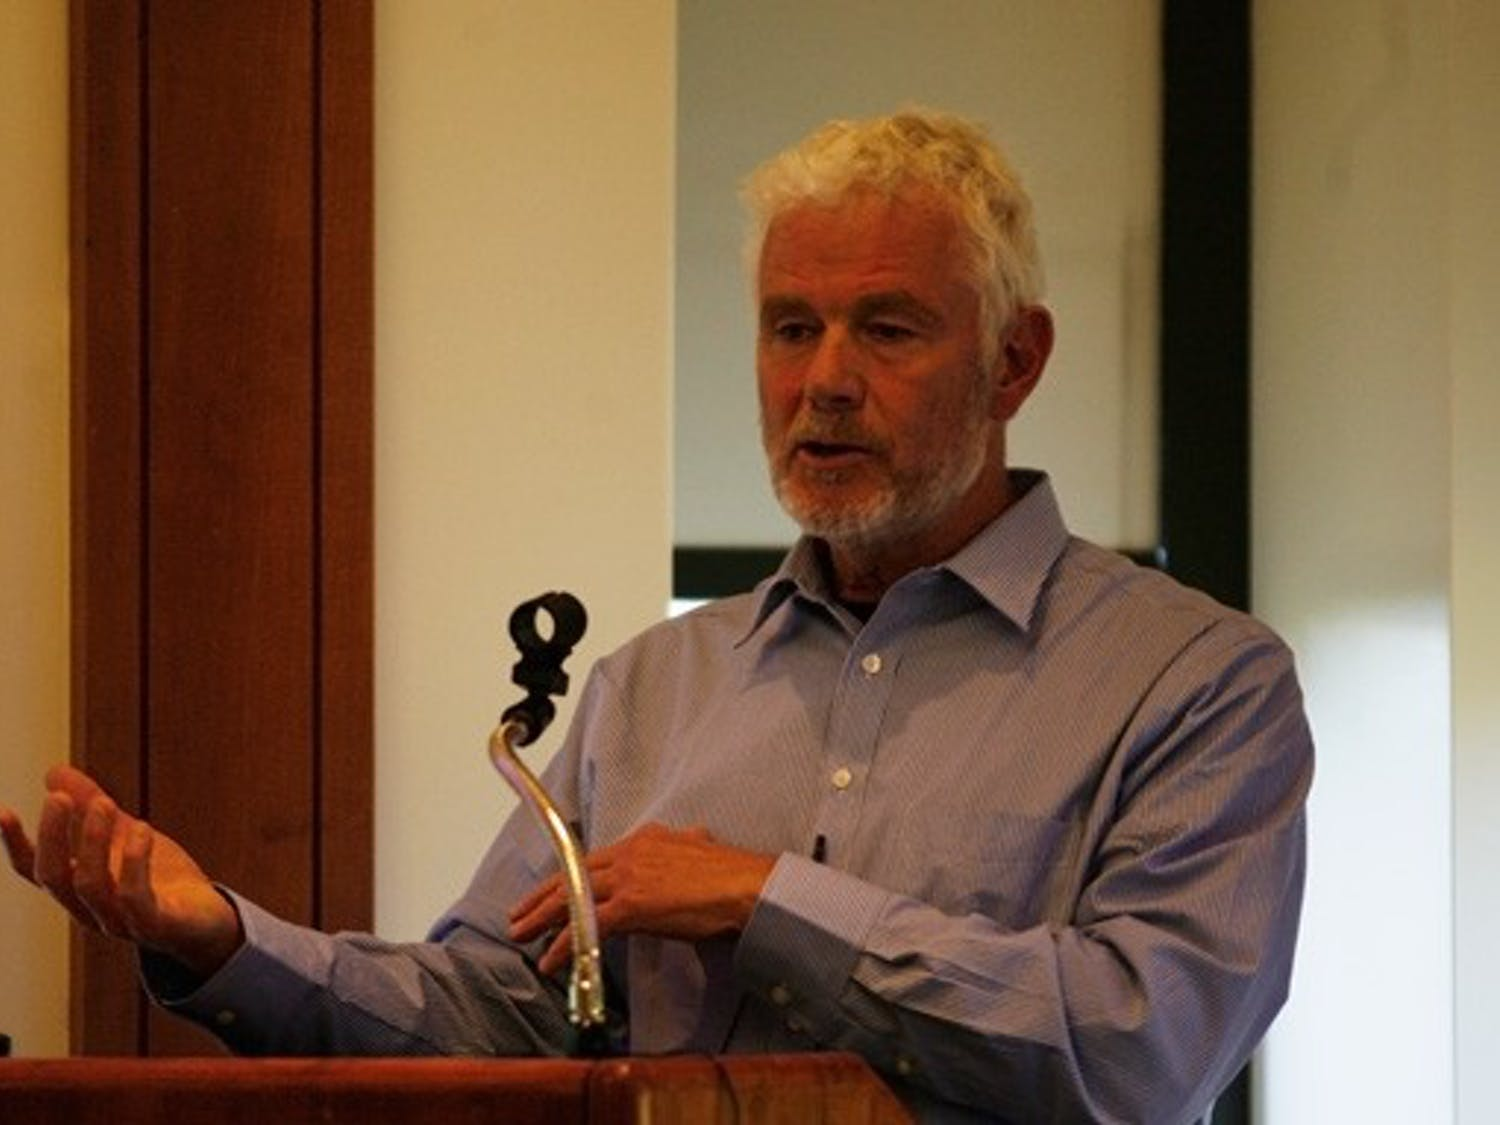 Edward Girardet, a journalist with extensive experience in Afghanistan, speaks Wednesday.